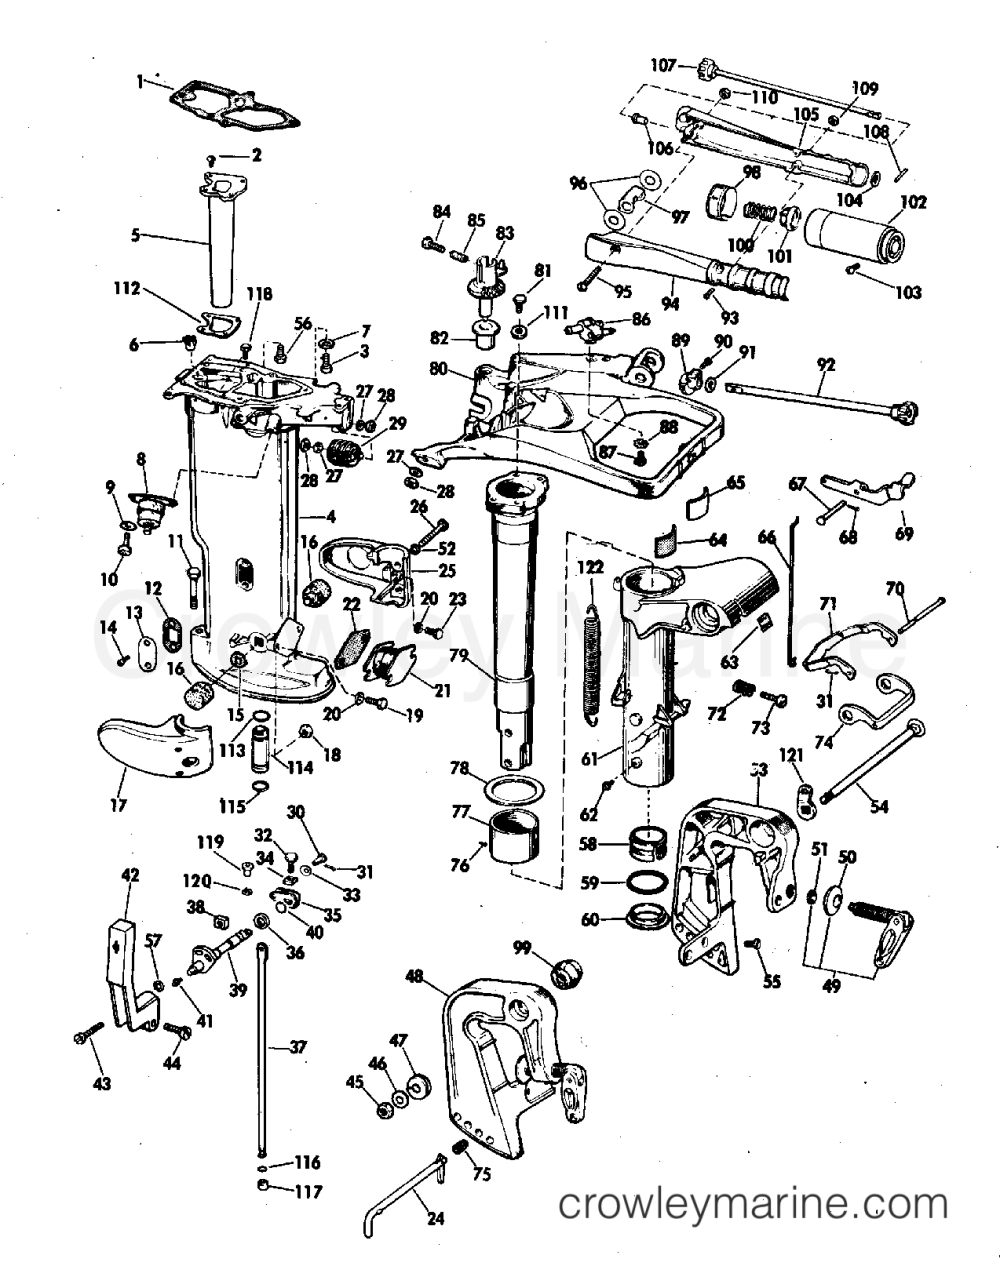 medium resolution of diagram of 1972 25e72r johnson outboard gearcase diagram and parts diagram of 1972 65esl72s johnson outboard motor cover diagram and